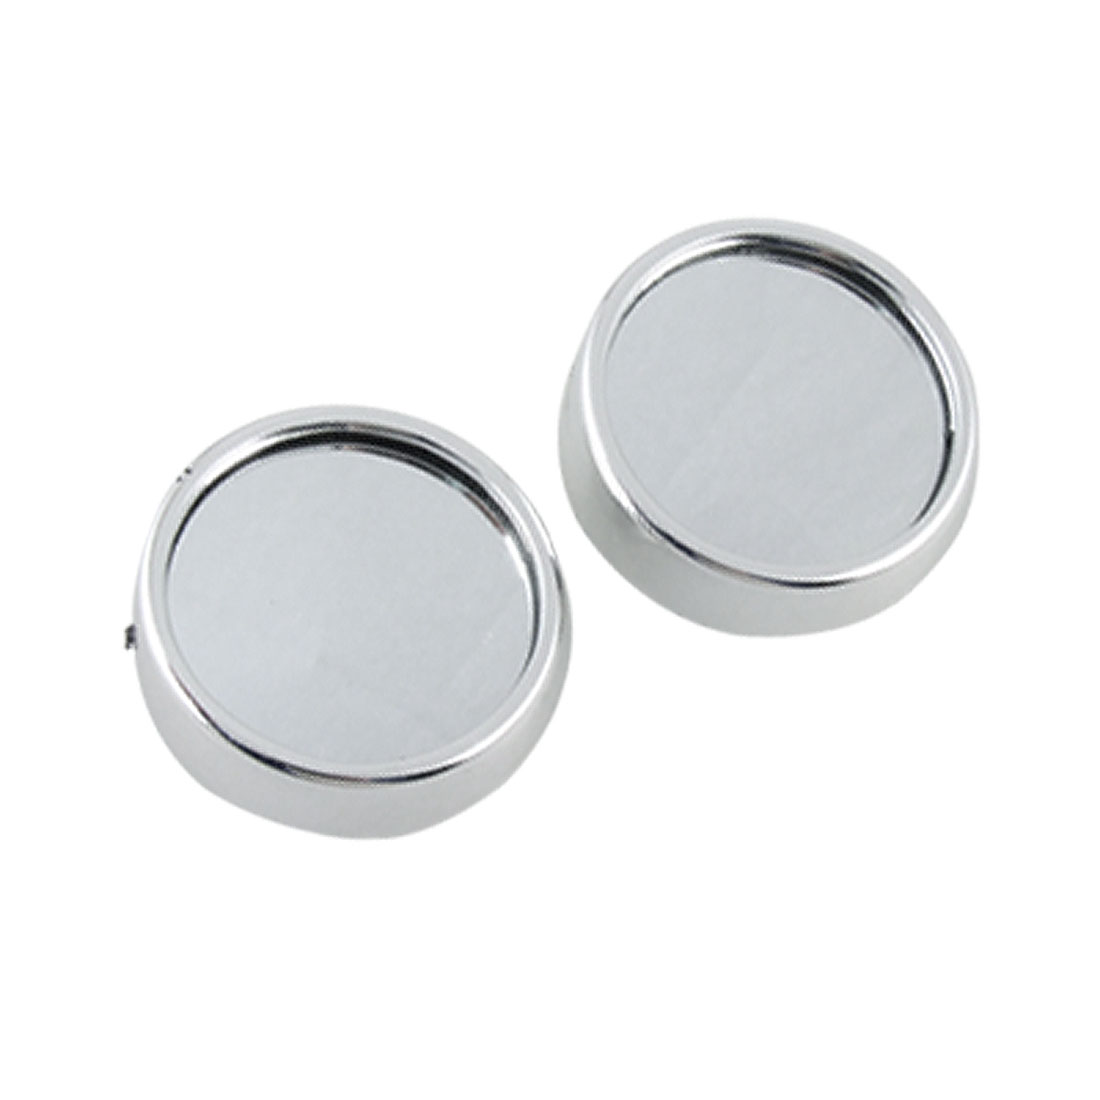 Car Side View Round Convex Rearview Blind Spot Mirrors 2 Pcs